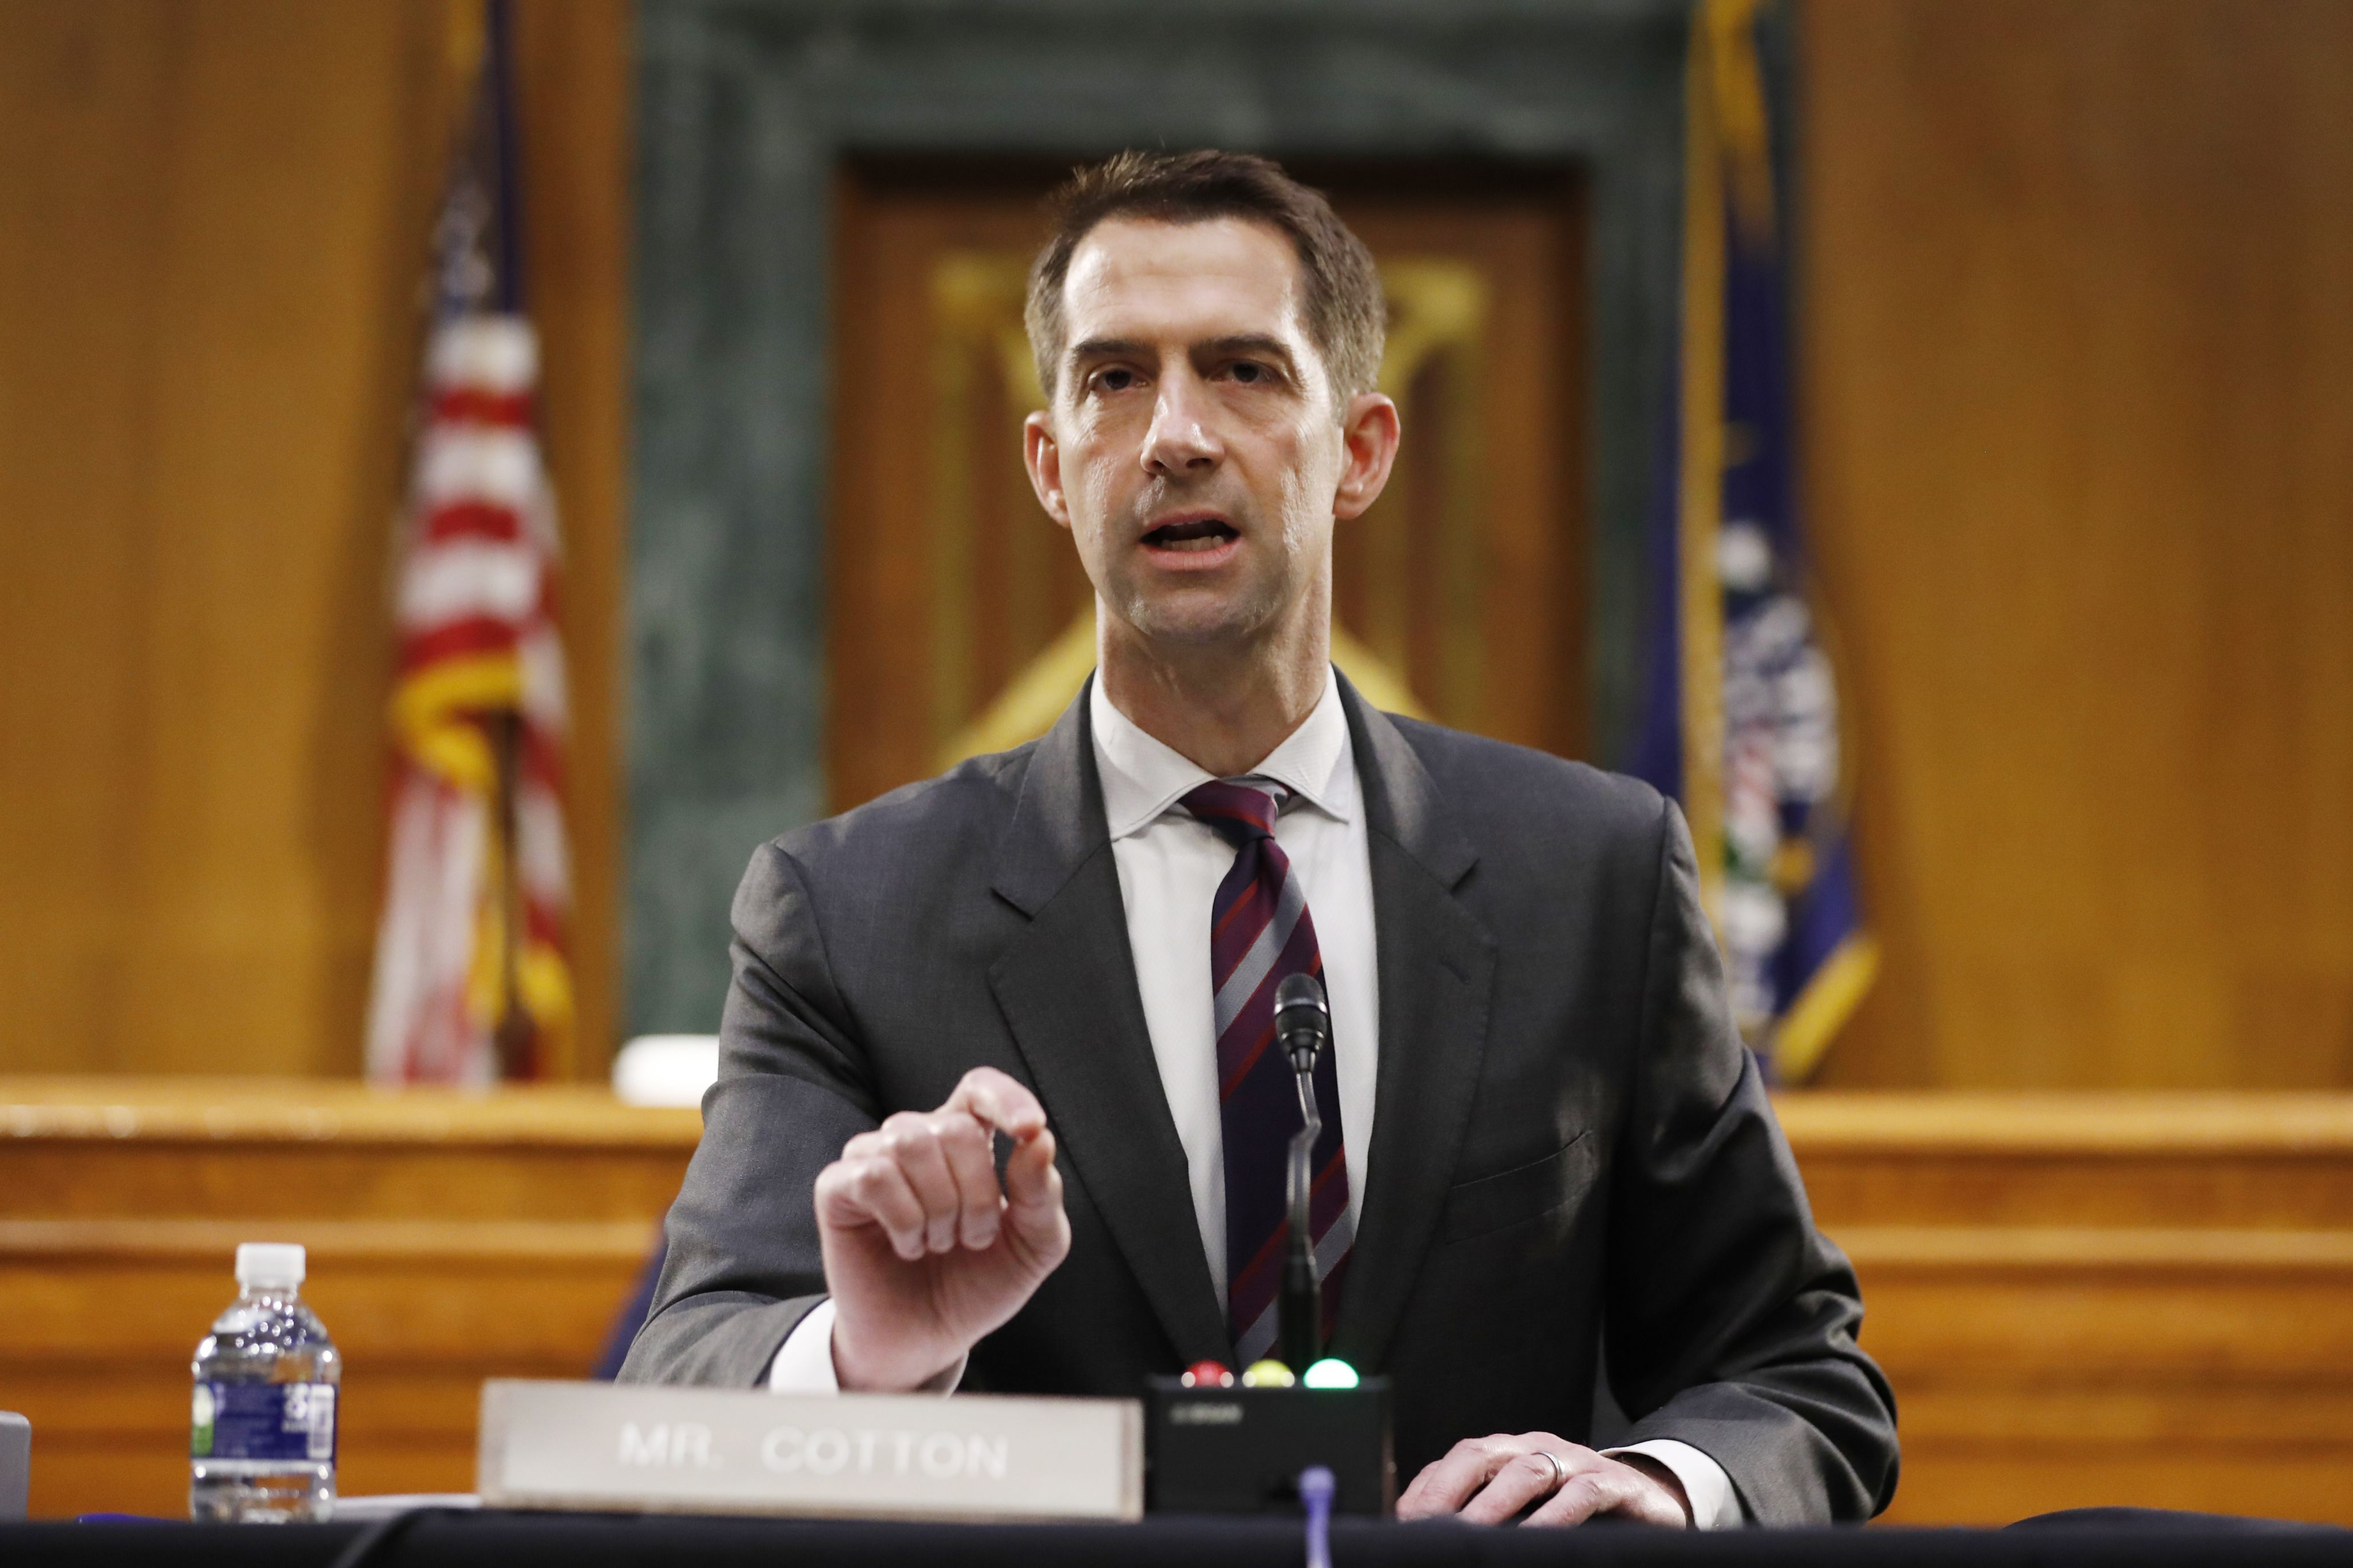 NYT employees say running Tom Cotton op-ed put black staff in danger